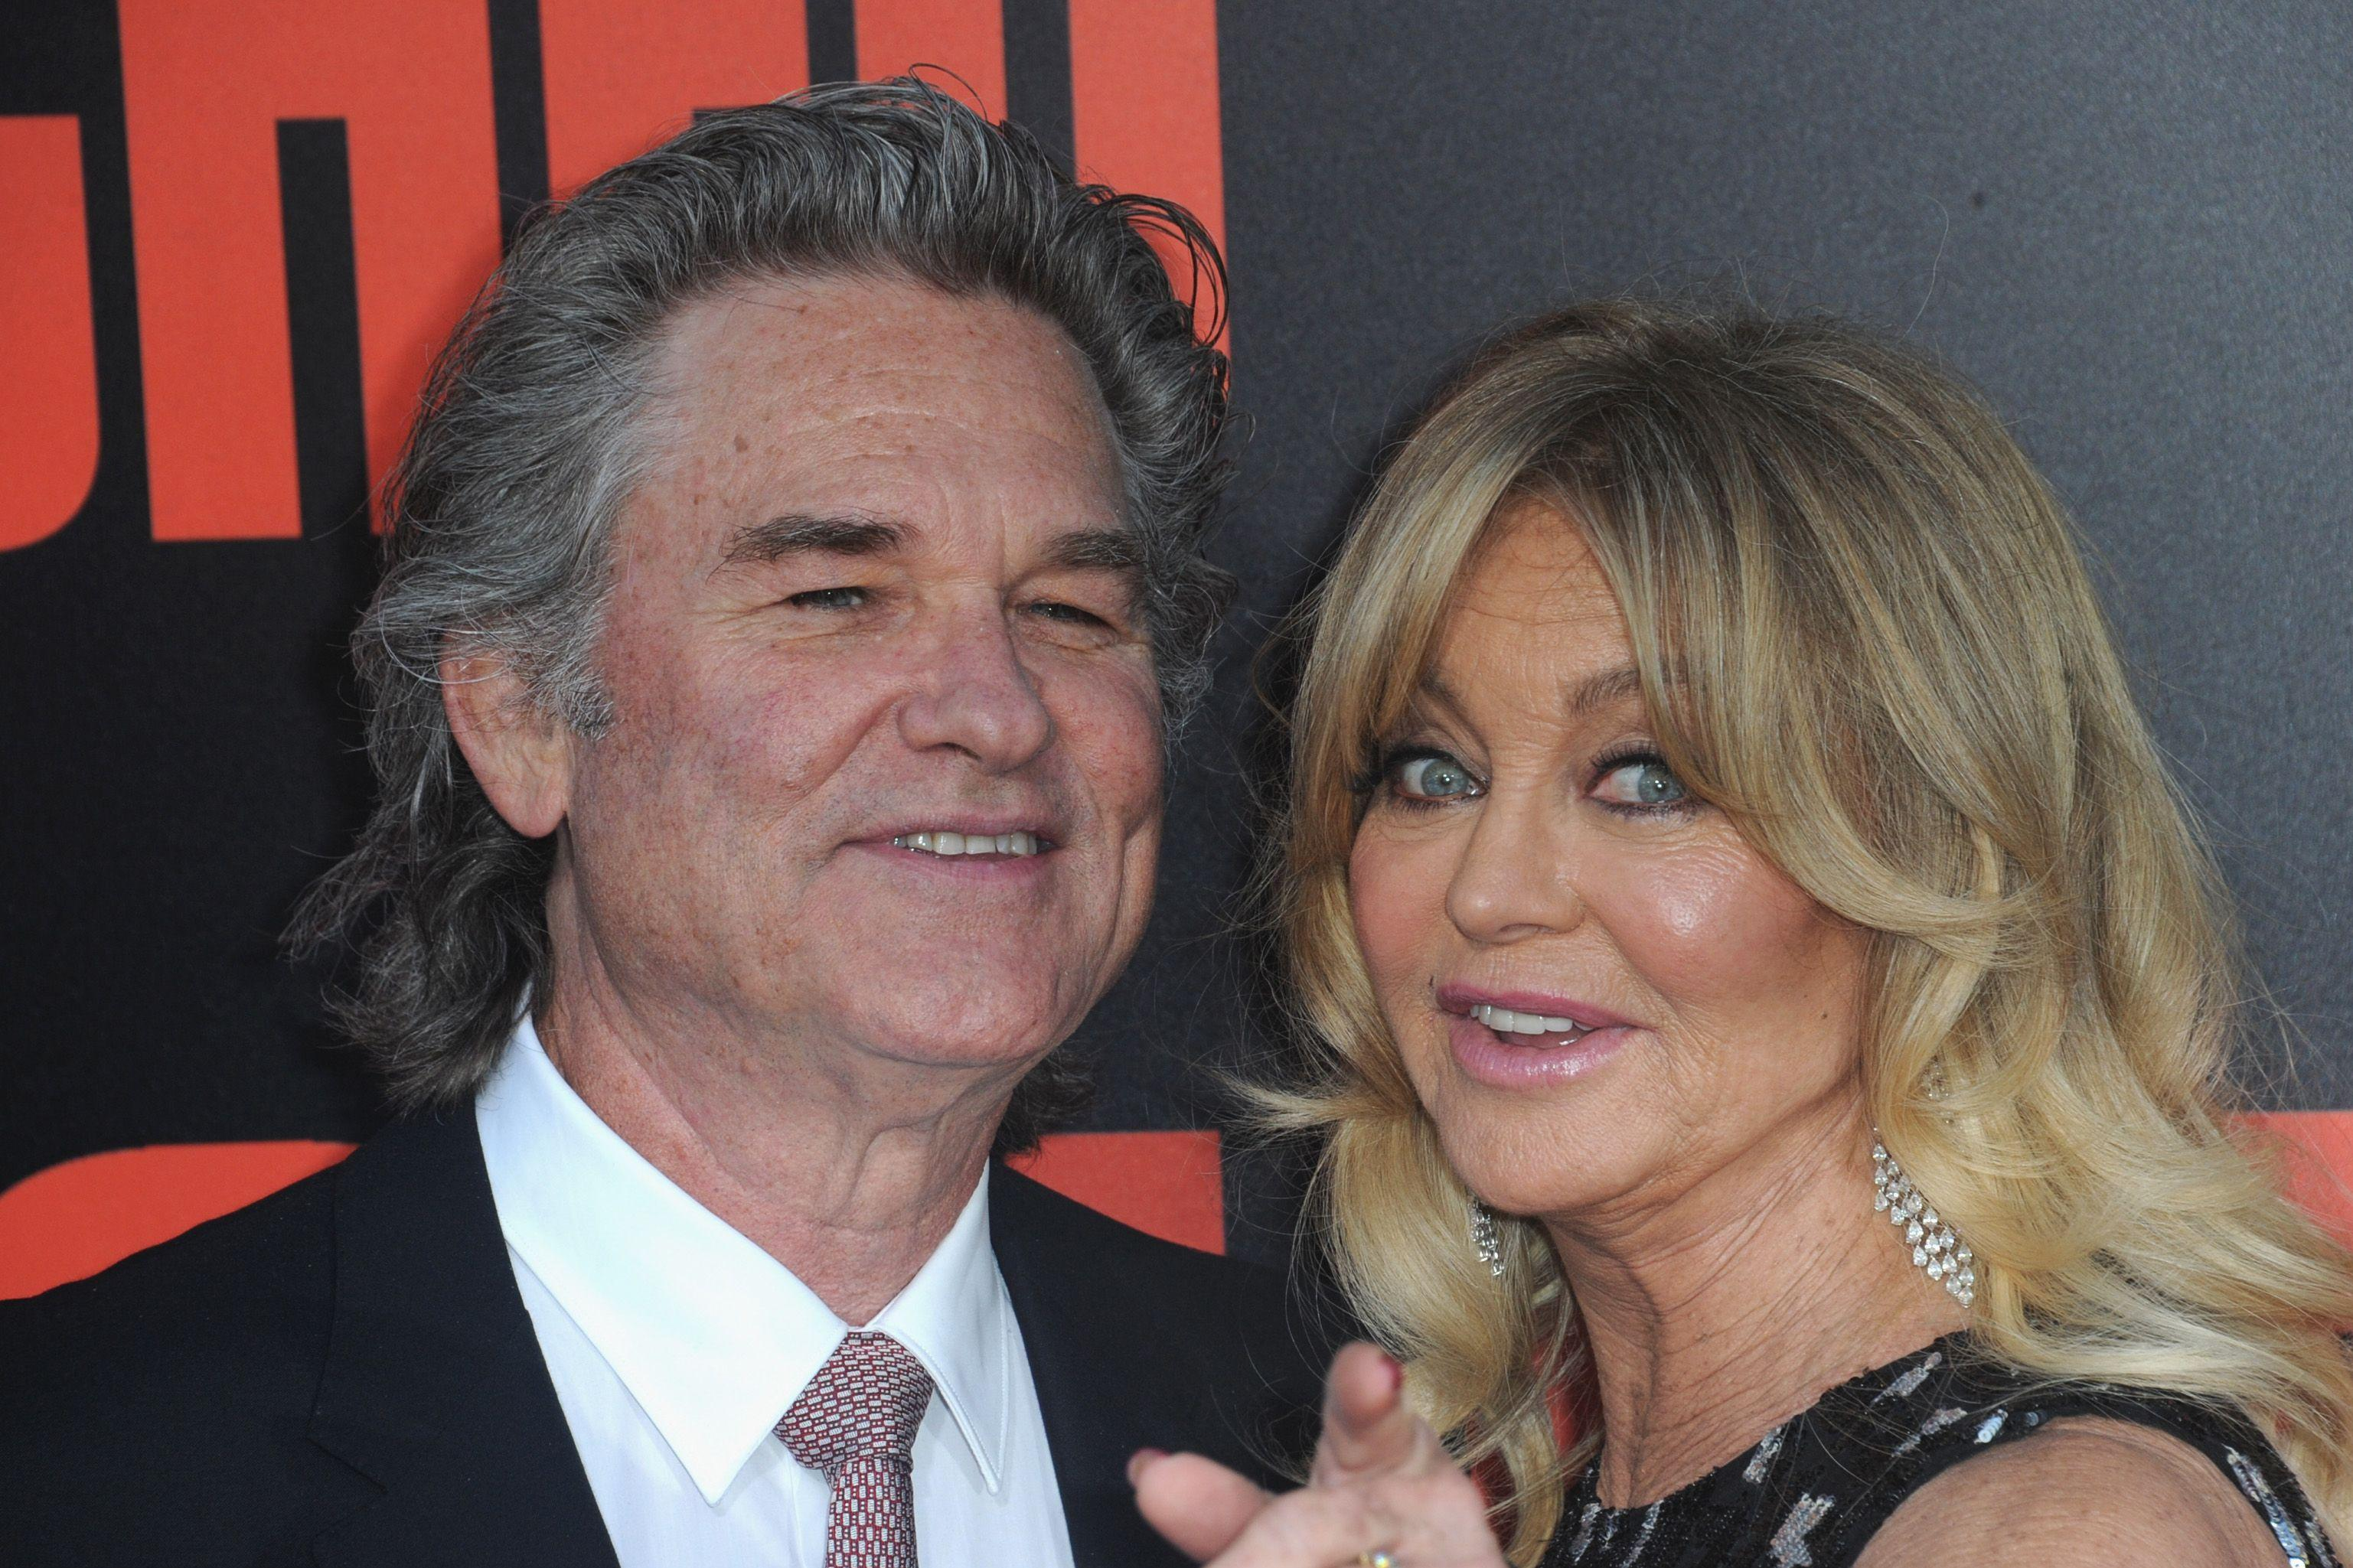 Kurt Russell and Goldie Hawn: The Success to Their Relationship